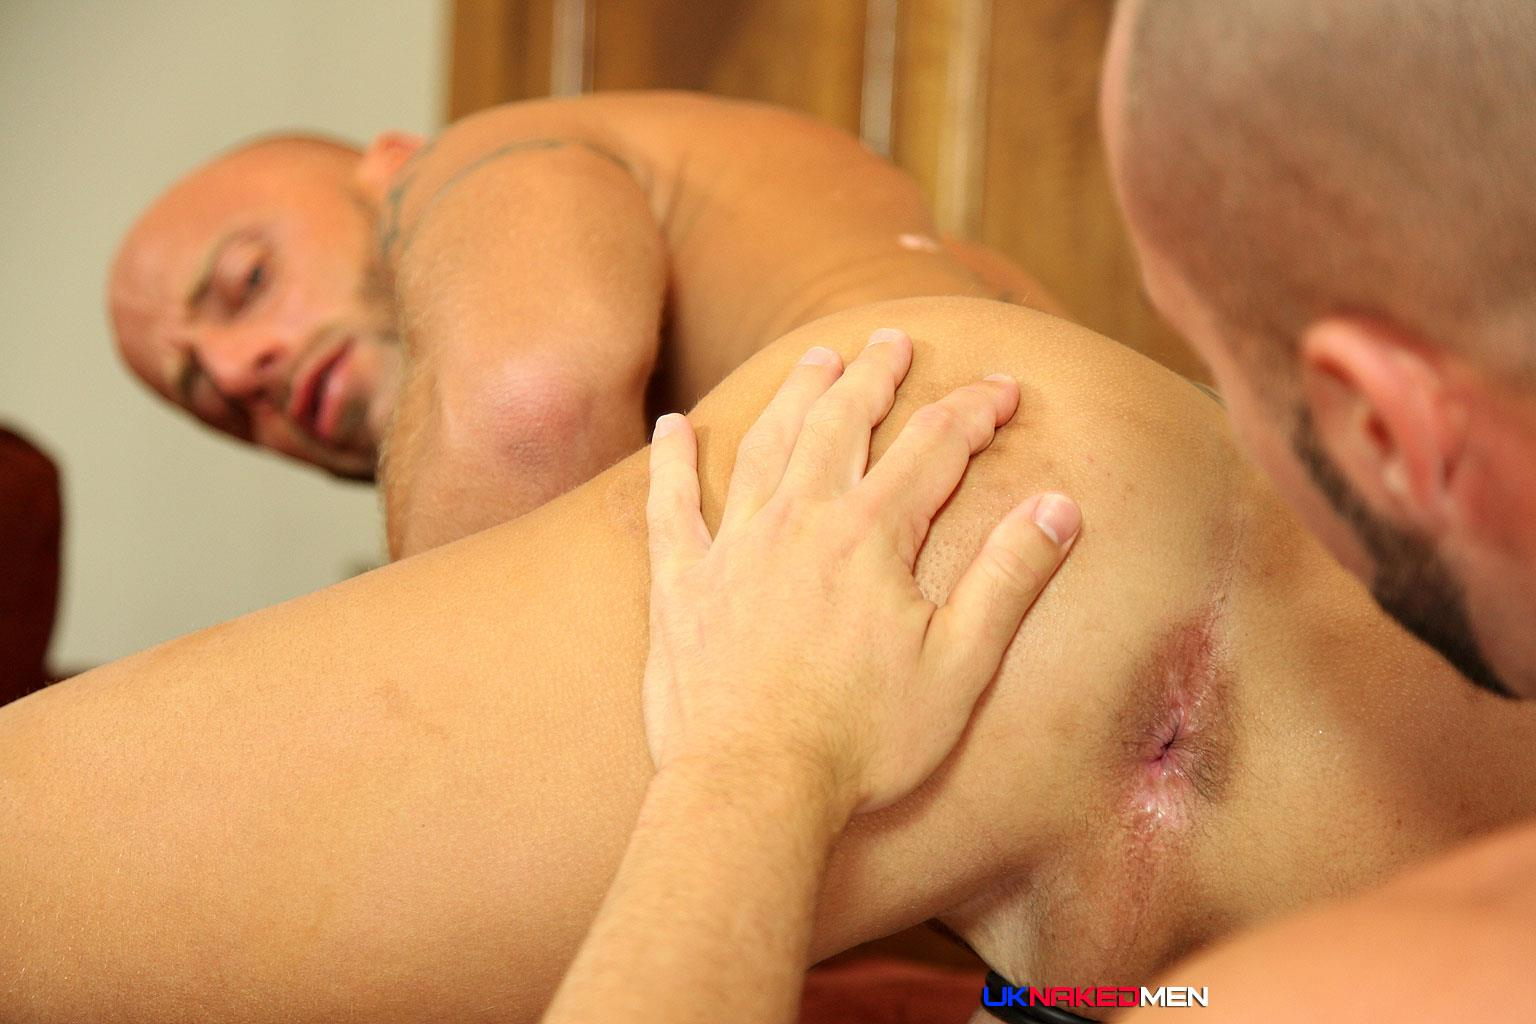 UK-Naked-Men-Aymeric-Deville-and-Craig-Farrel-Big-Thick-Uncut-Cocks-Fucking-Amateur-Gay-Porn-14 Aymeric Deville And His Thick Uncut Cock Getting Fucked By A Stranger